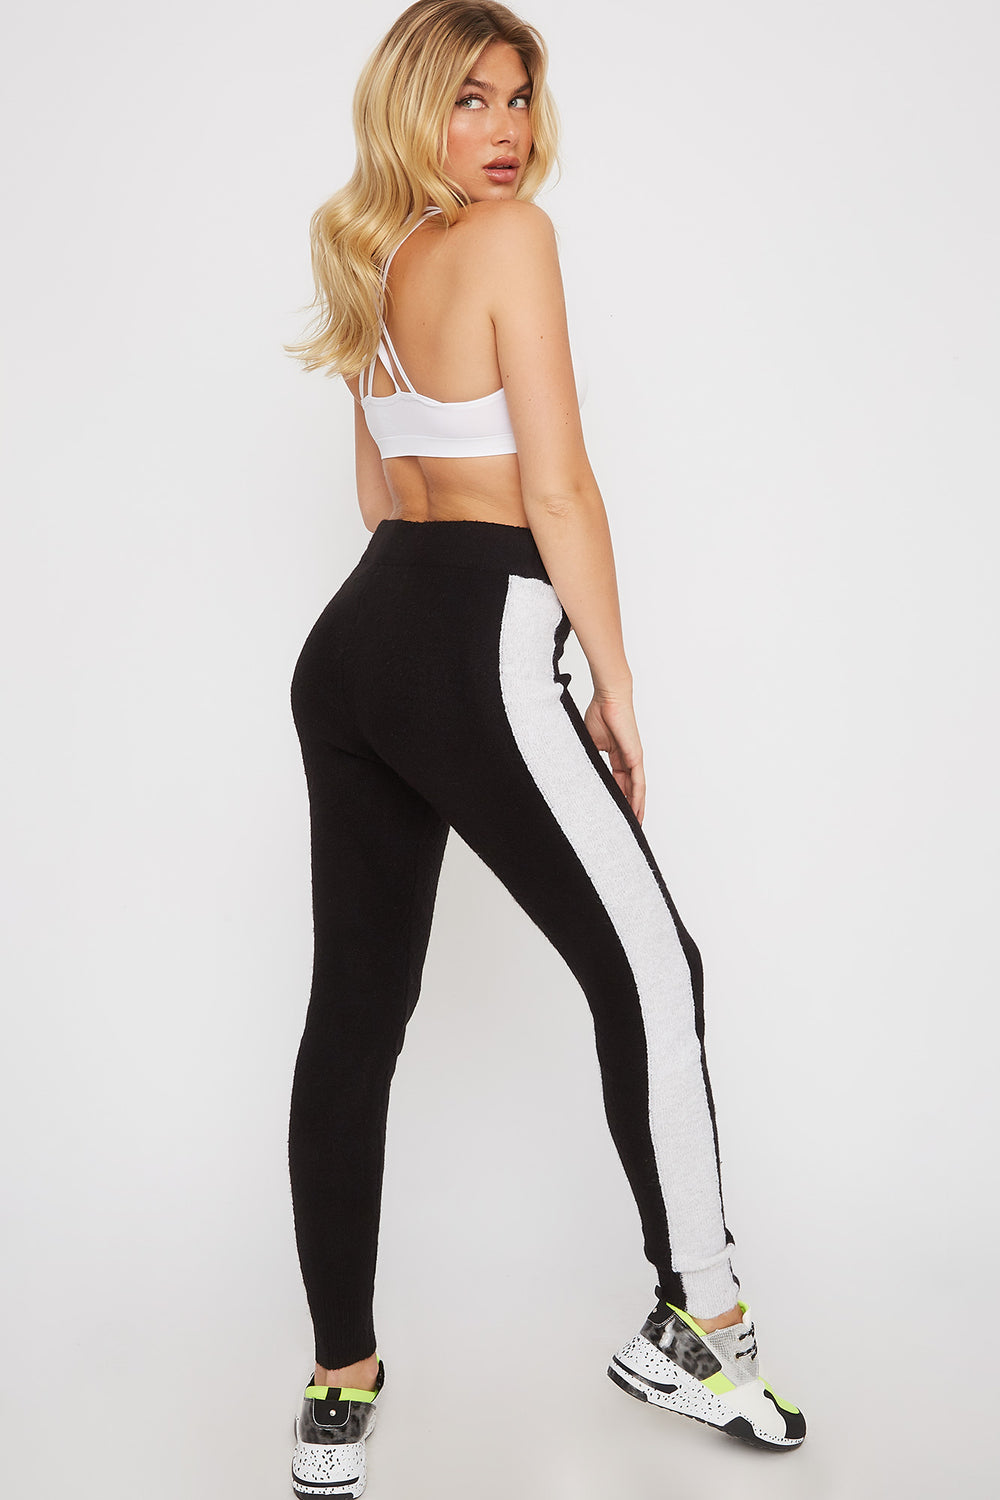 Mossy Pull-On Jogger Black With White